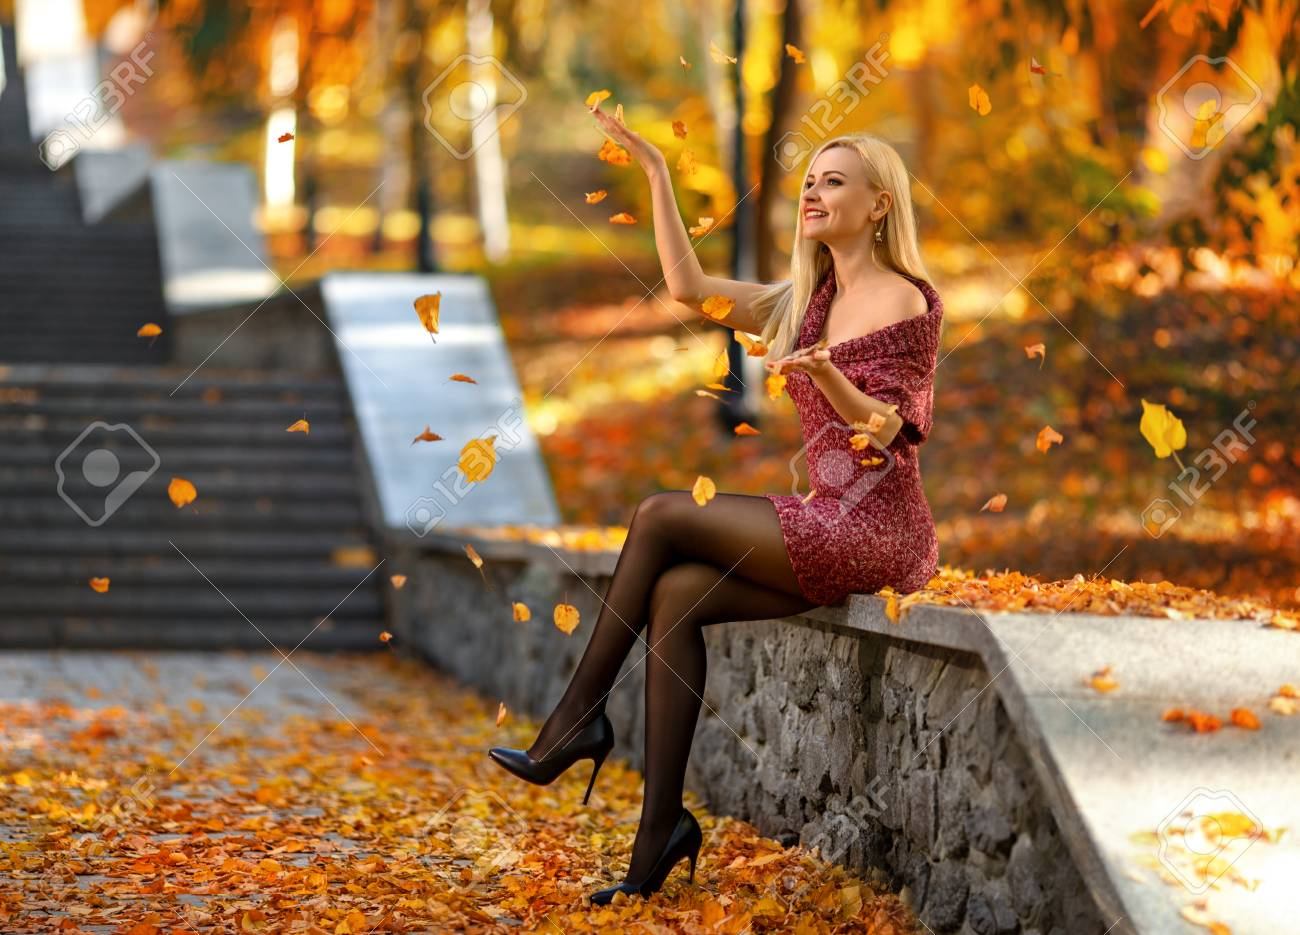 Beautiful blonde girl with perfect legs playing with fallen leaves on the street of autumn park in the lights of setting sun. - 110521811